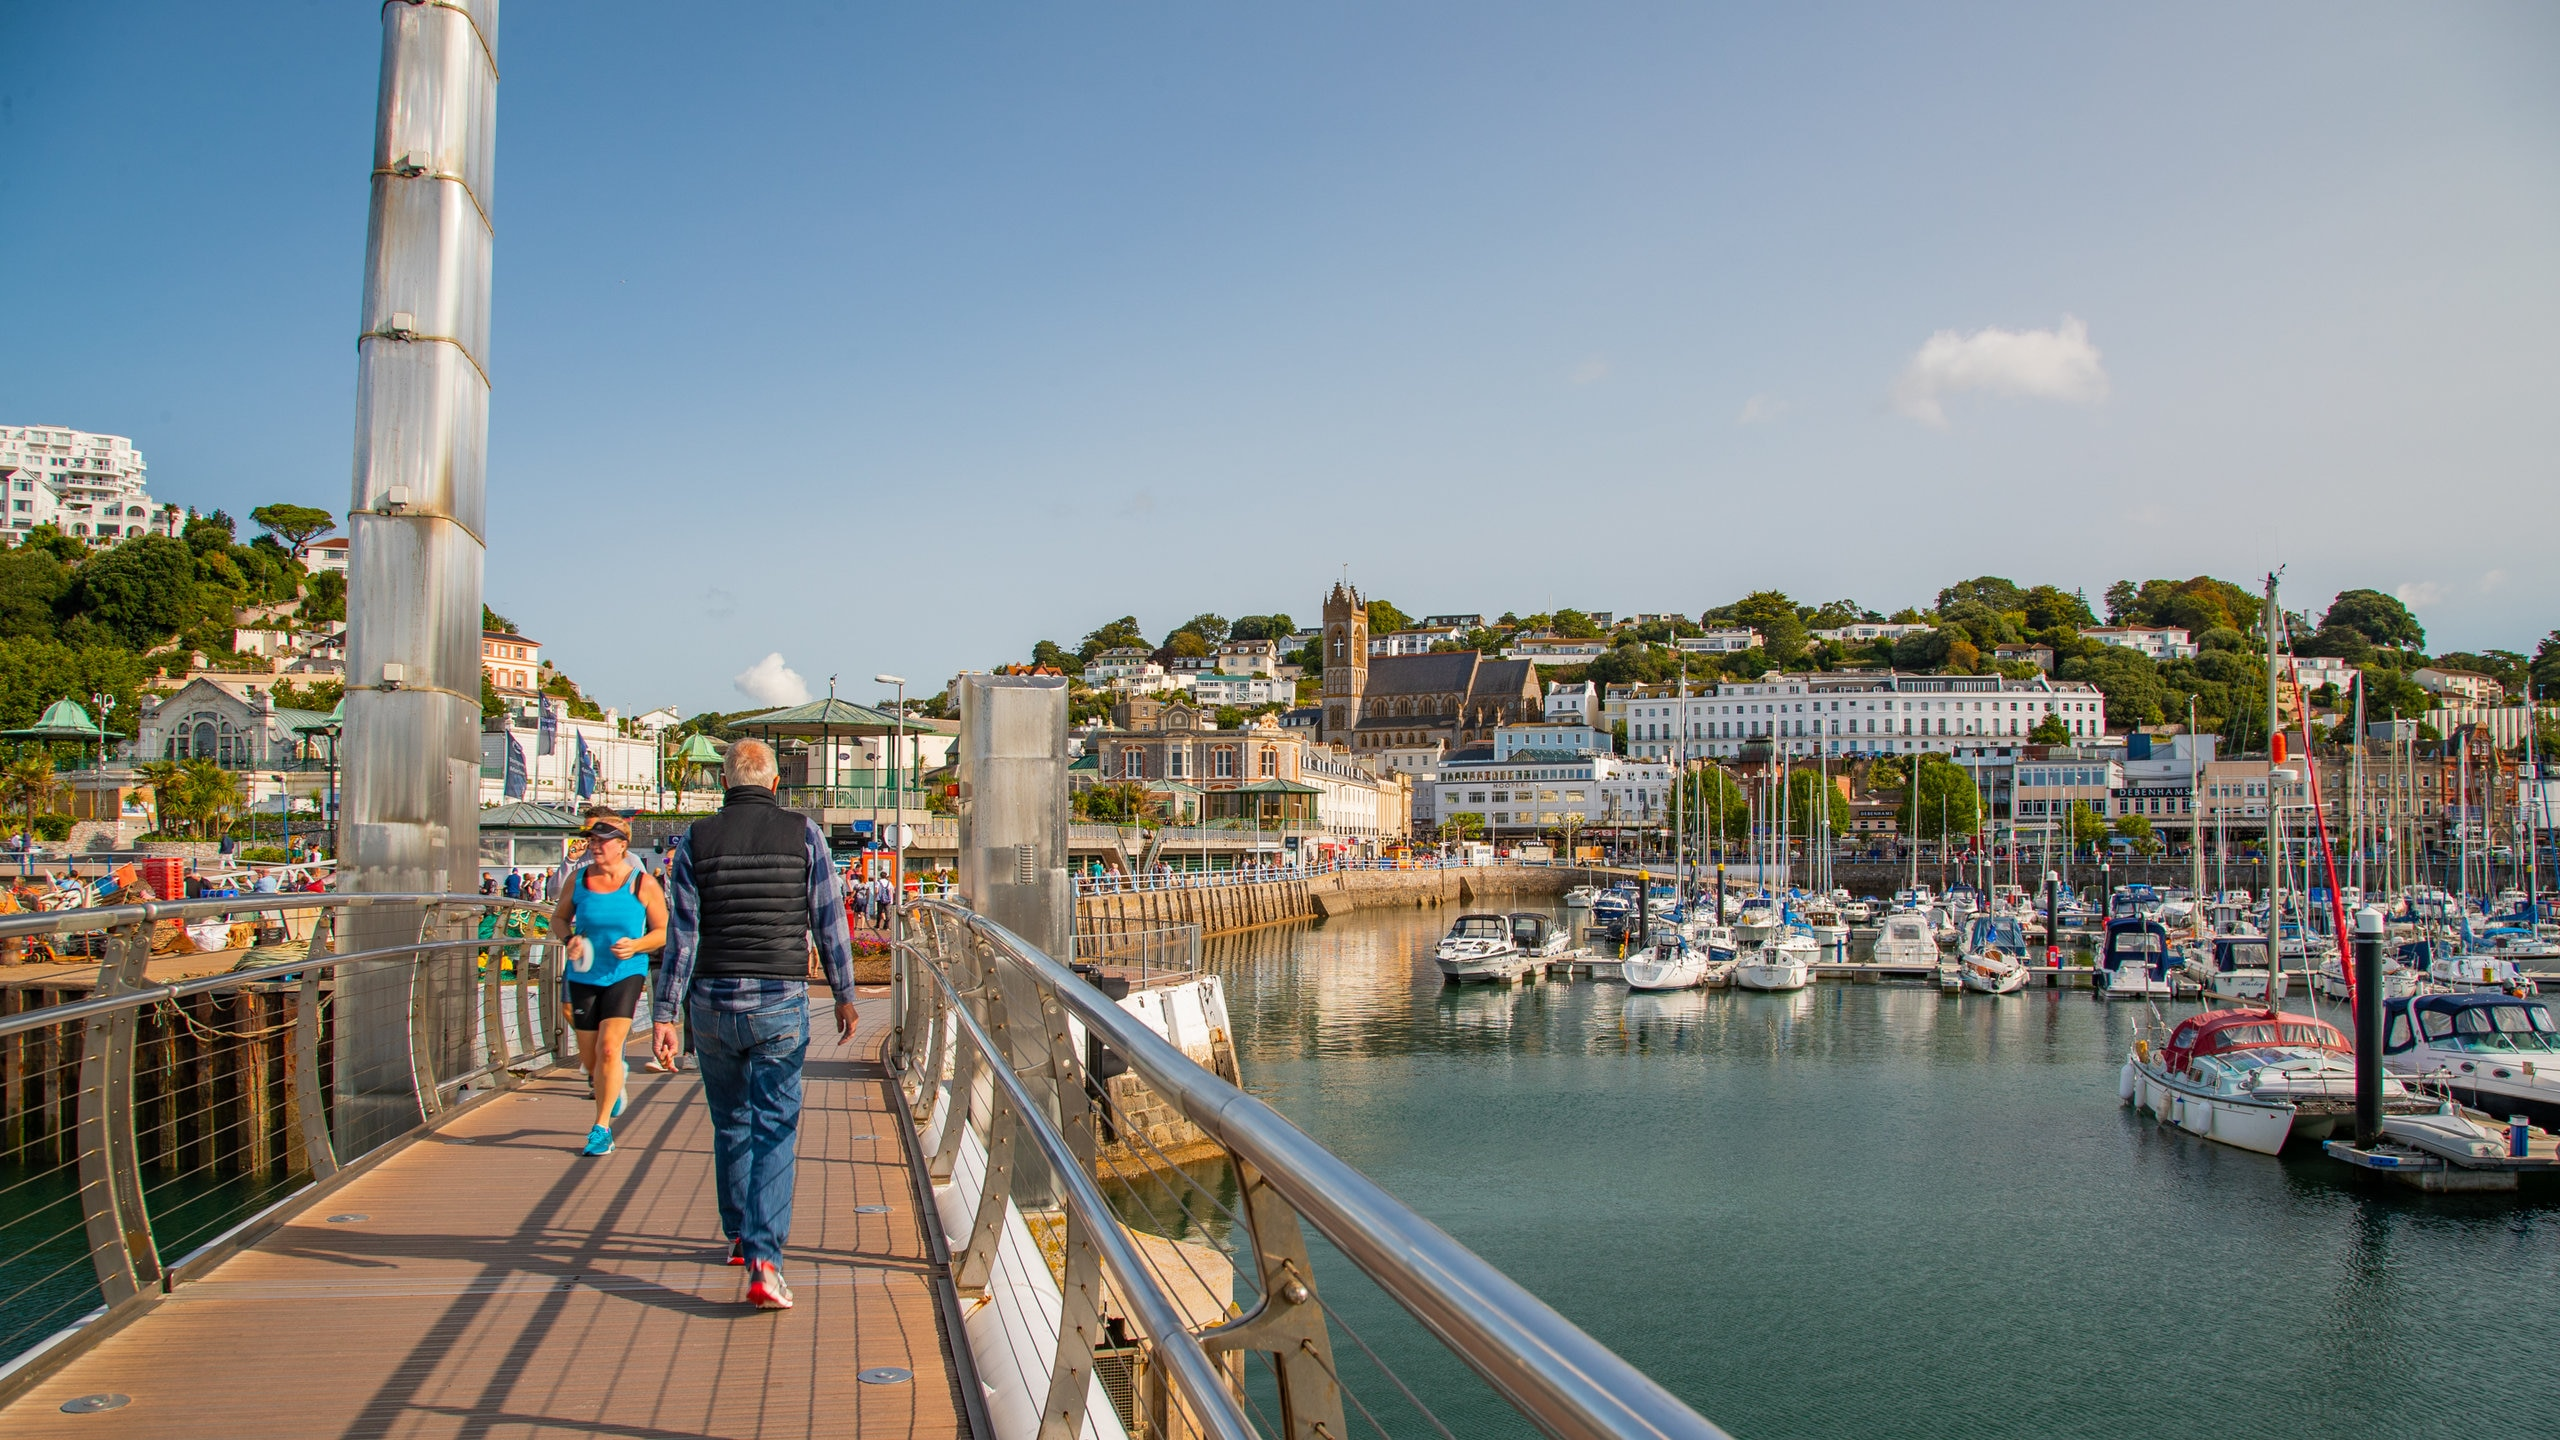 Admire the beautiful yachts moored in this picturesque harbor, which sits within easy walking distance of many of Torquay's main attractions.